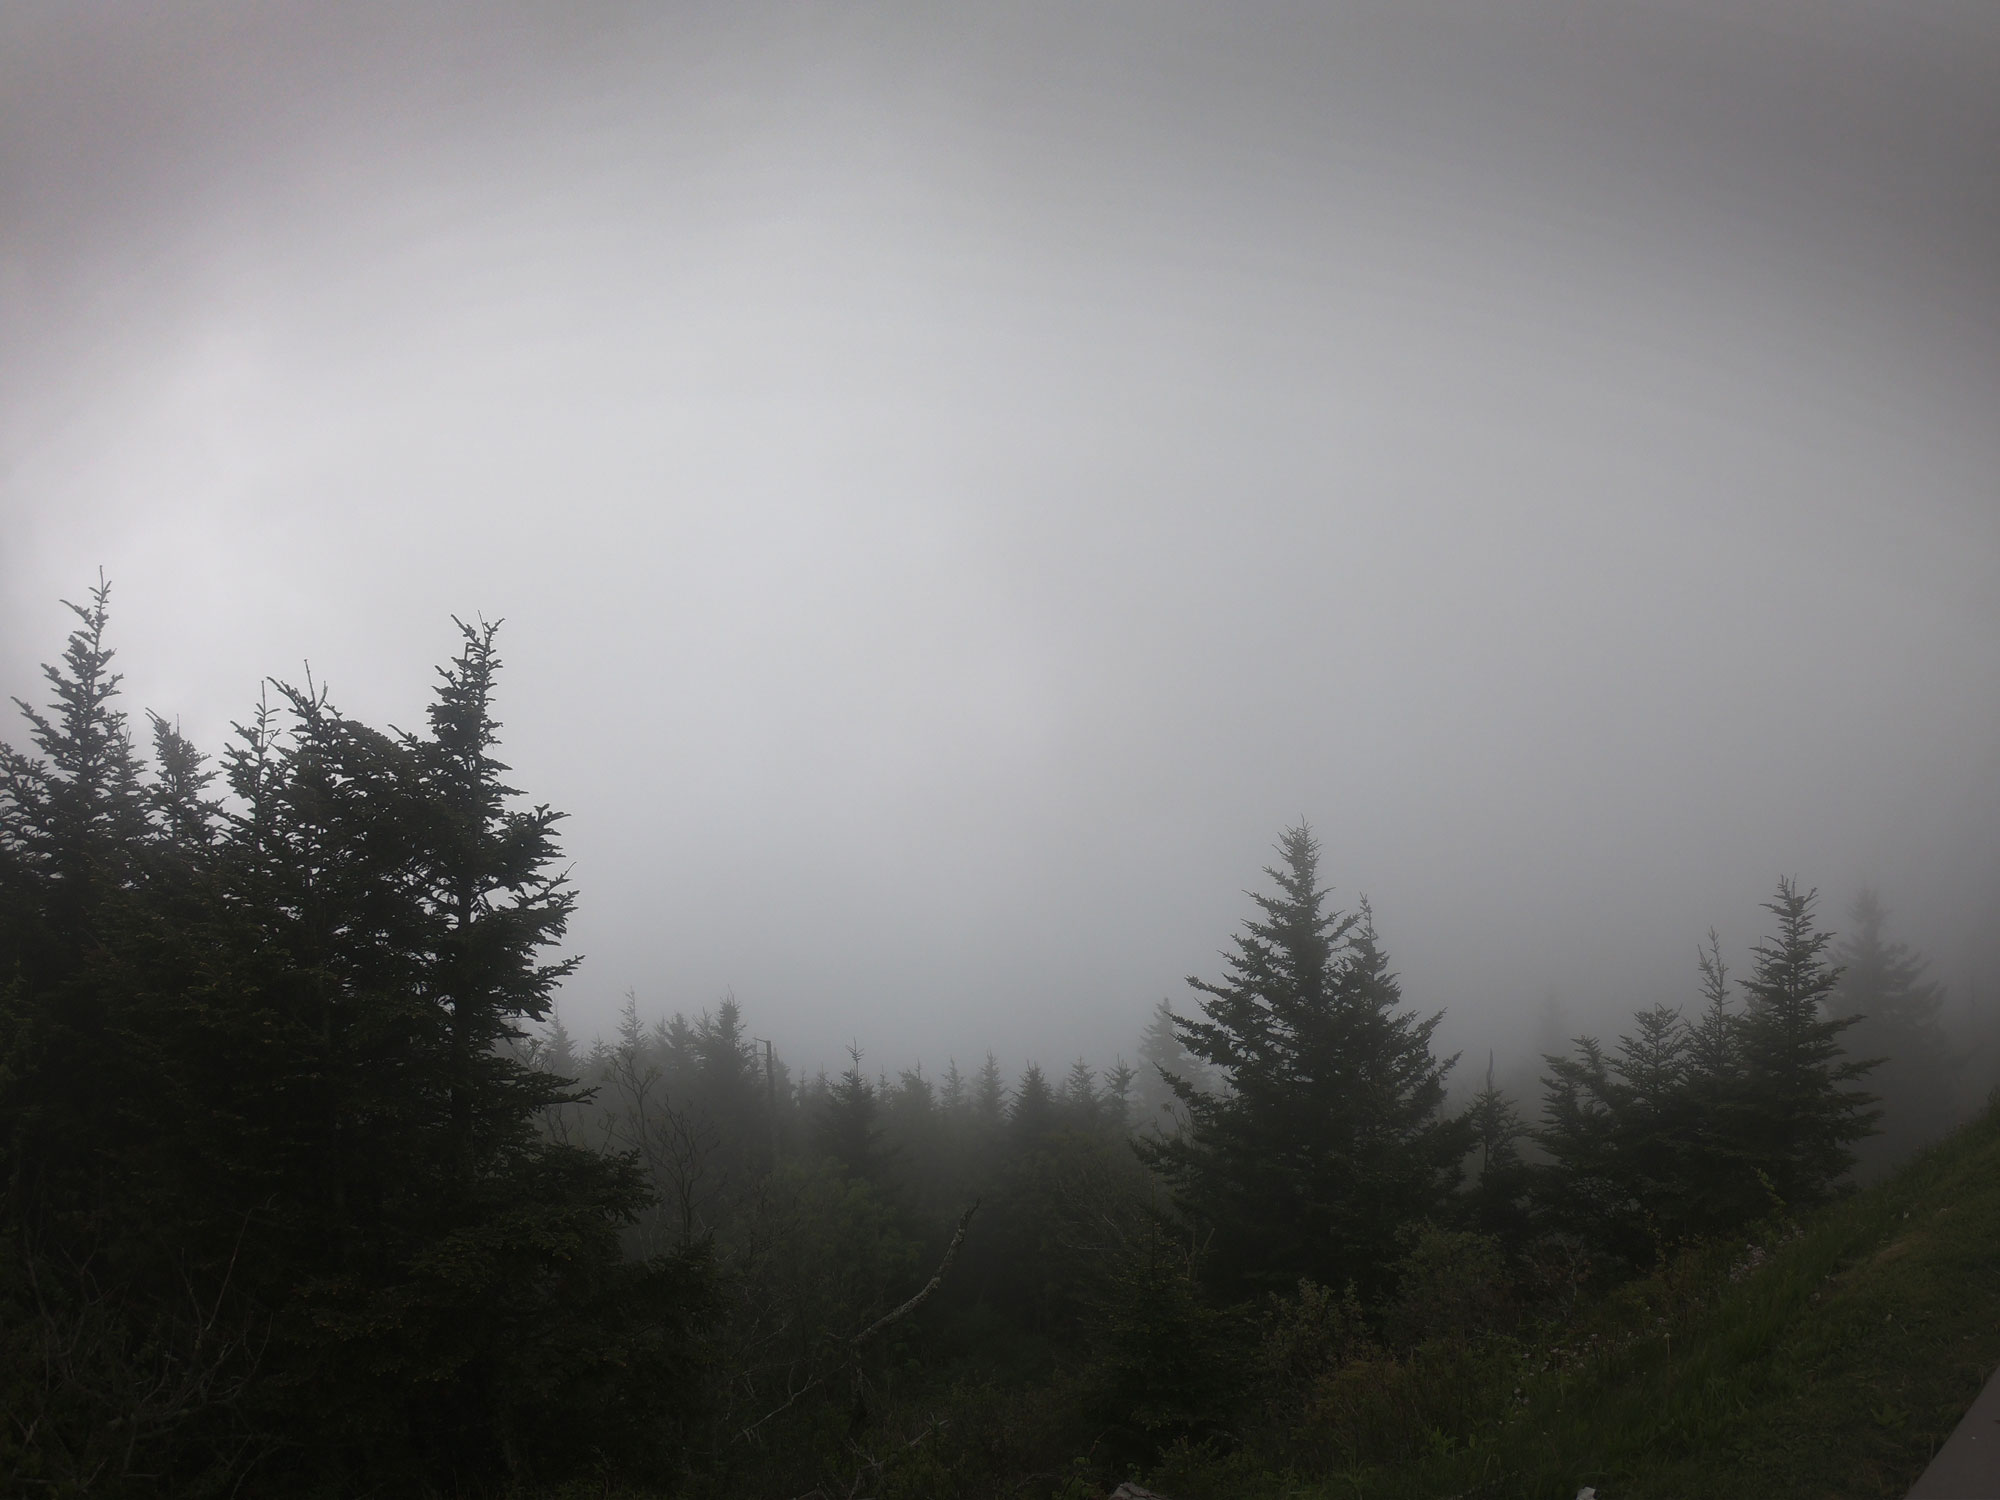 Cloud covered Clingmans Dome in Great Smoky Mountains National Park